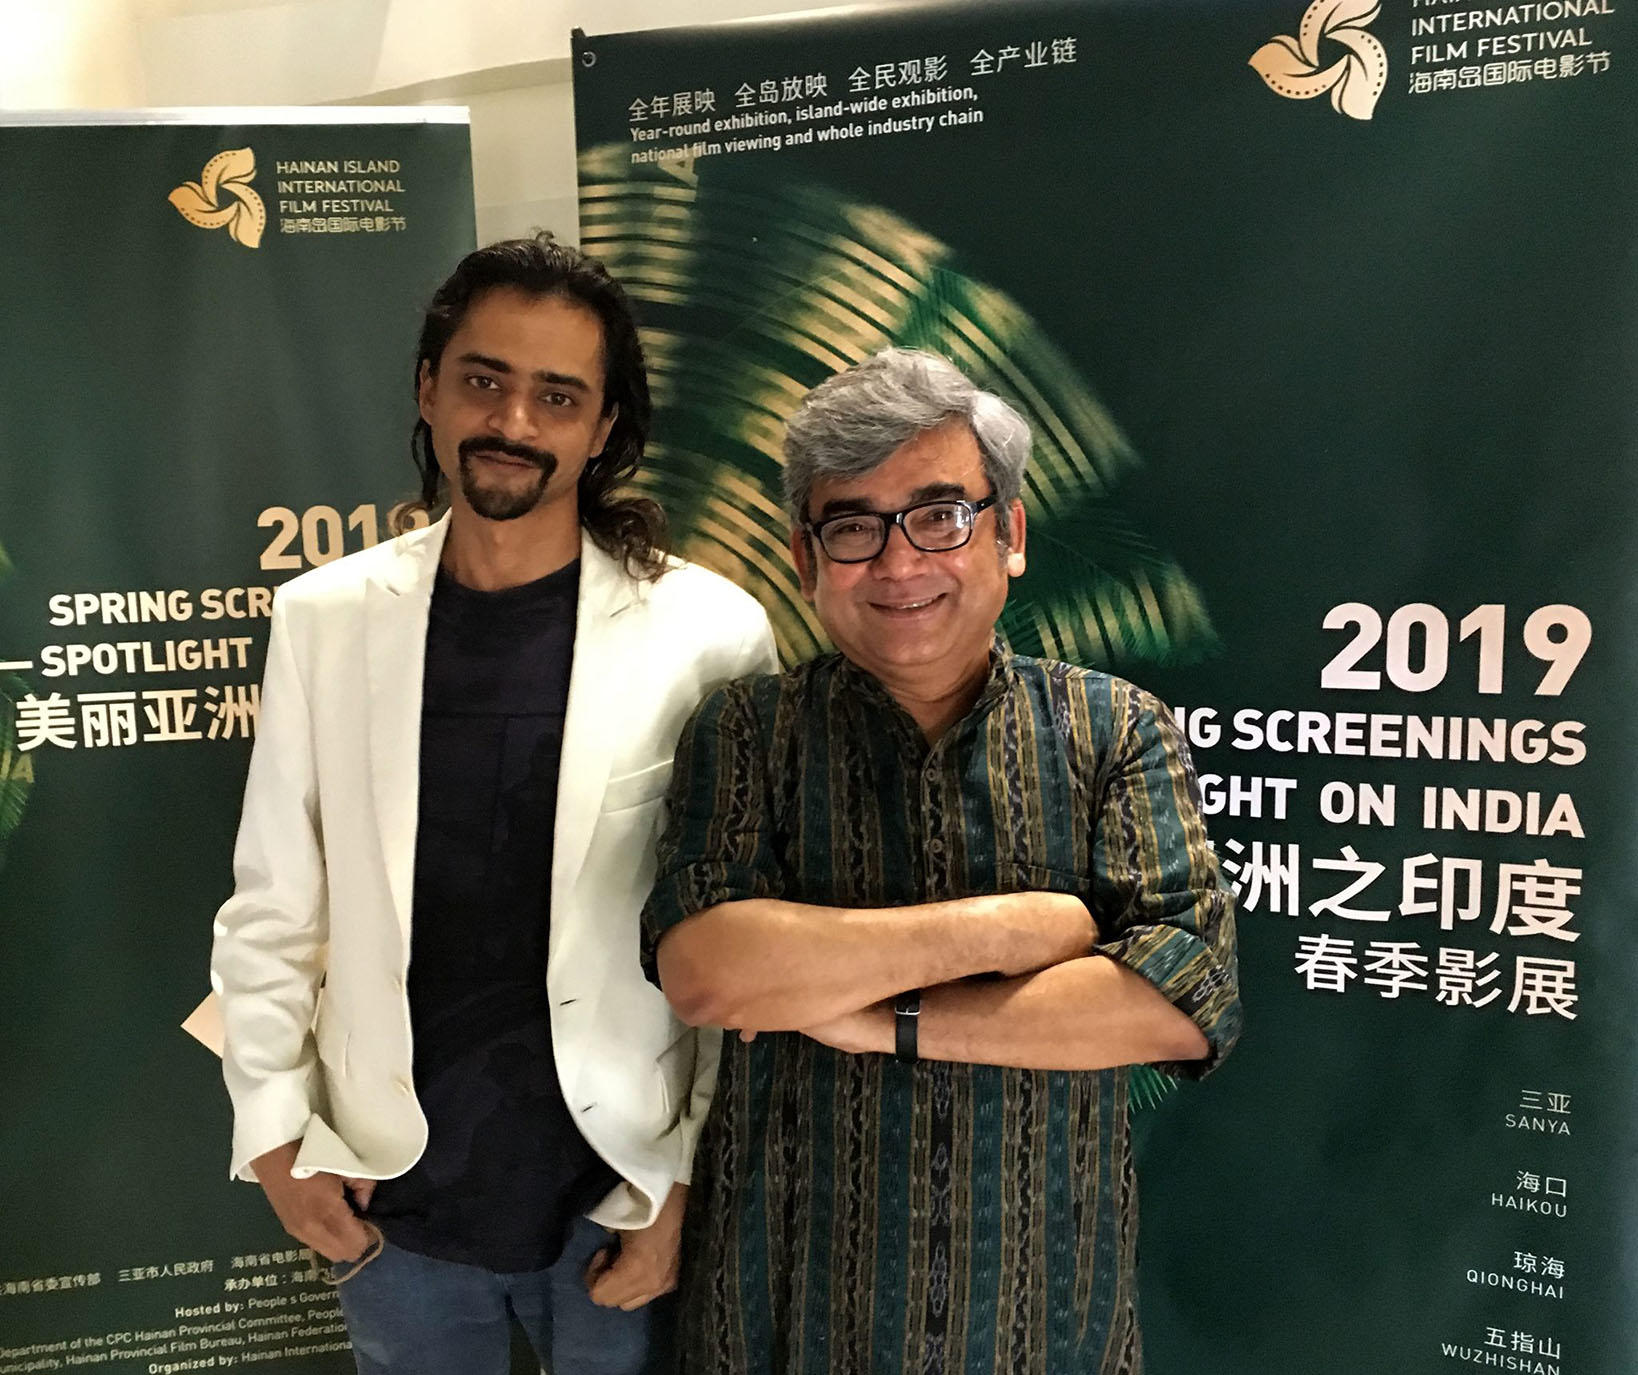 Sagar Desai and Arun Gupta at Hainan China Indian Film Fest lo